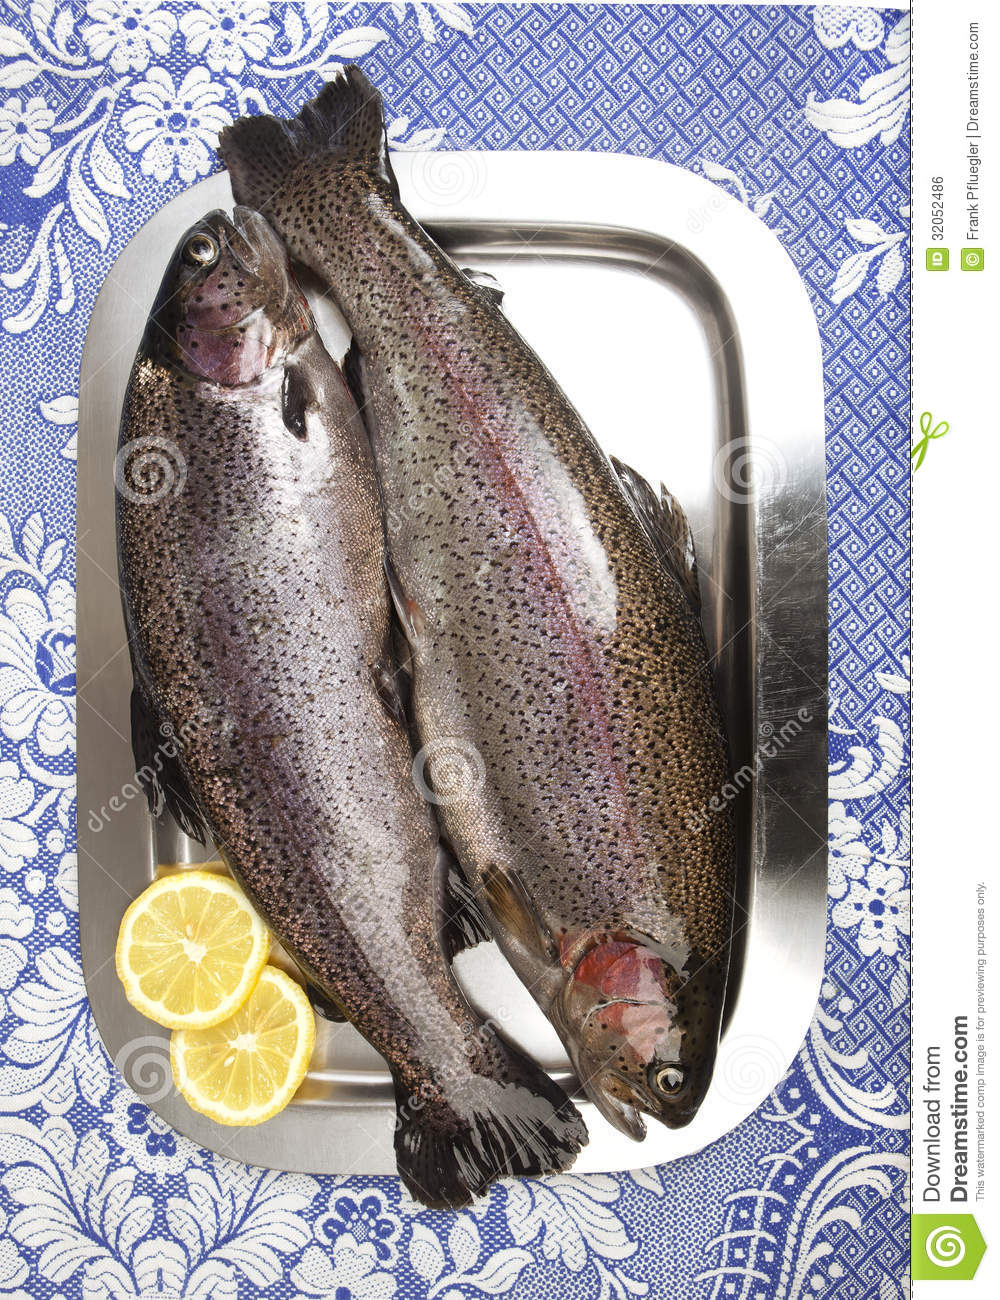 Two fresh rainbow trouts on a stainless steel tray